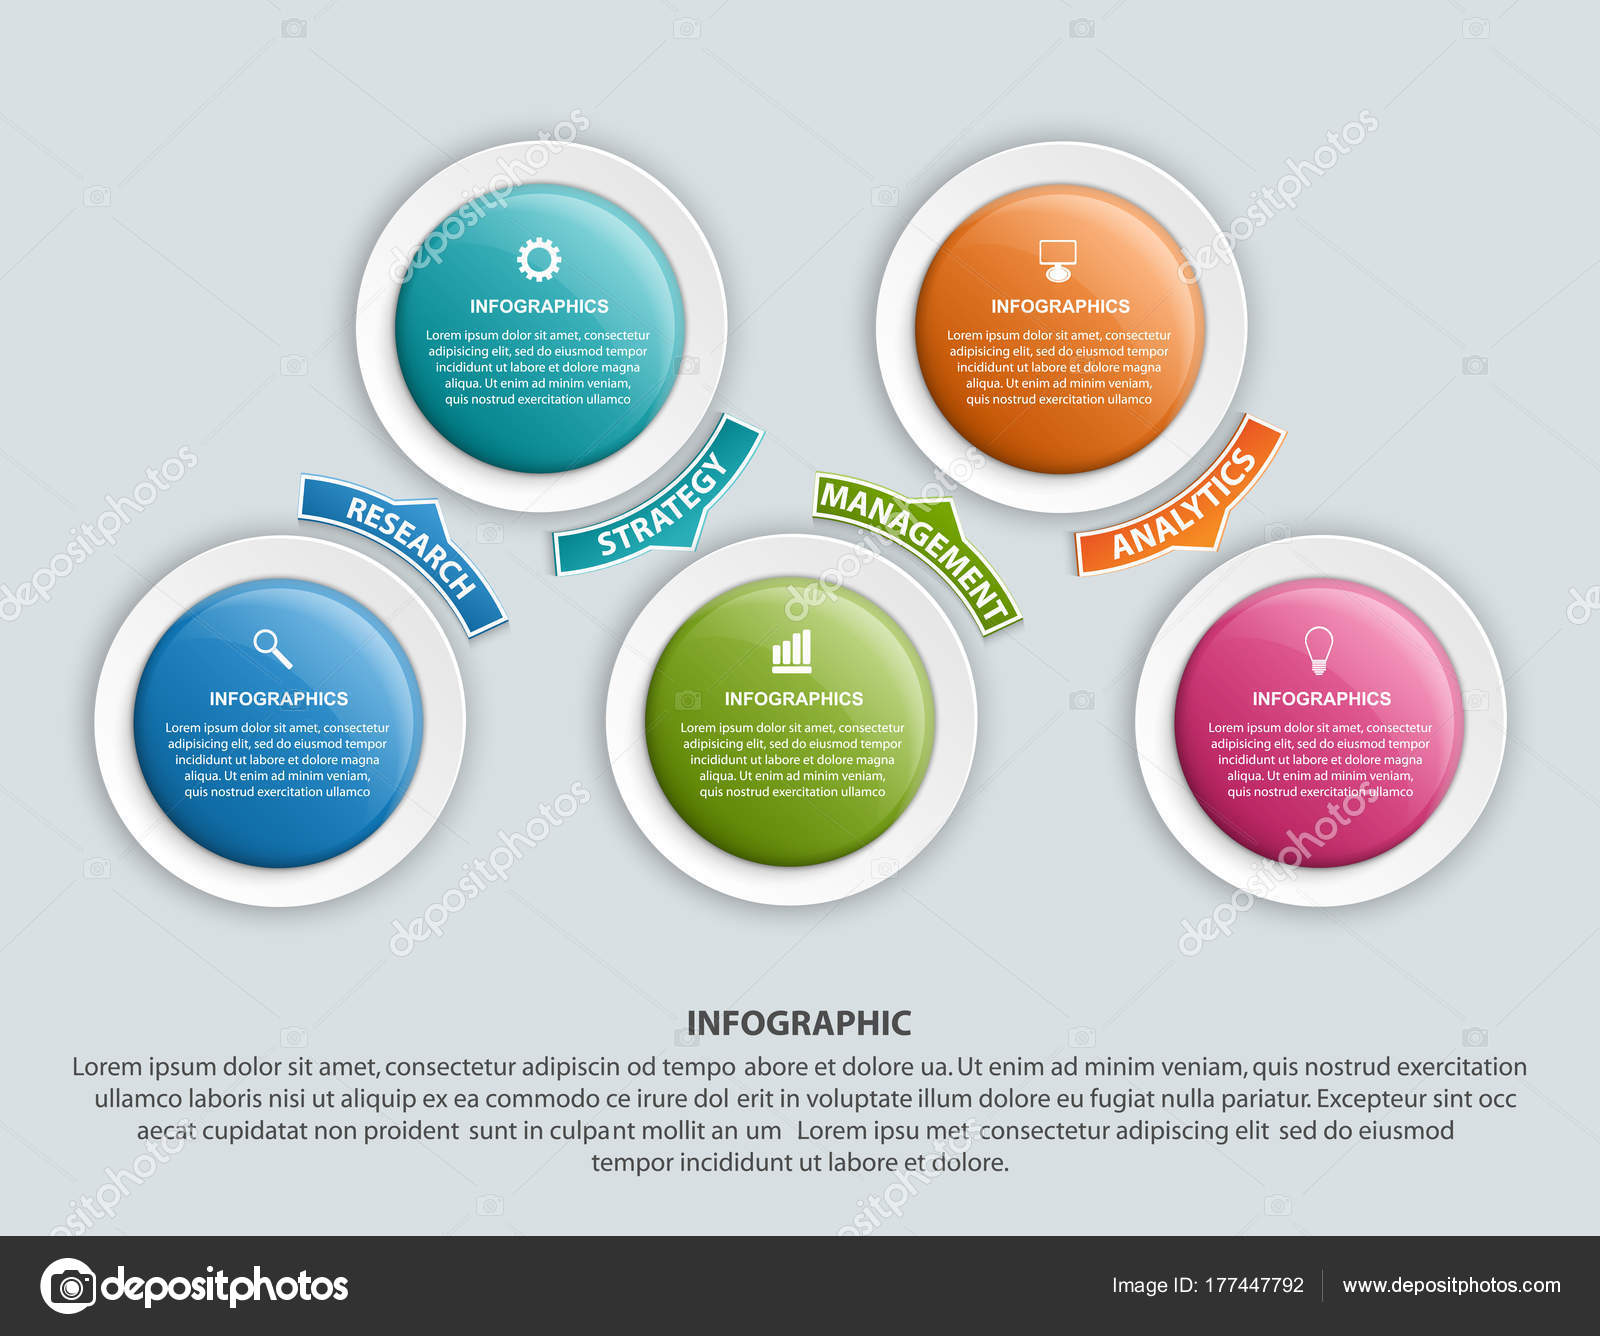 Infographic design organization chart template for business